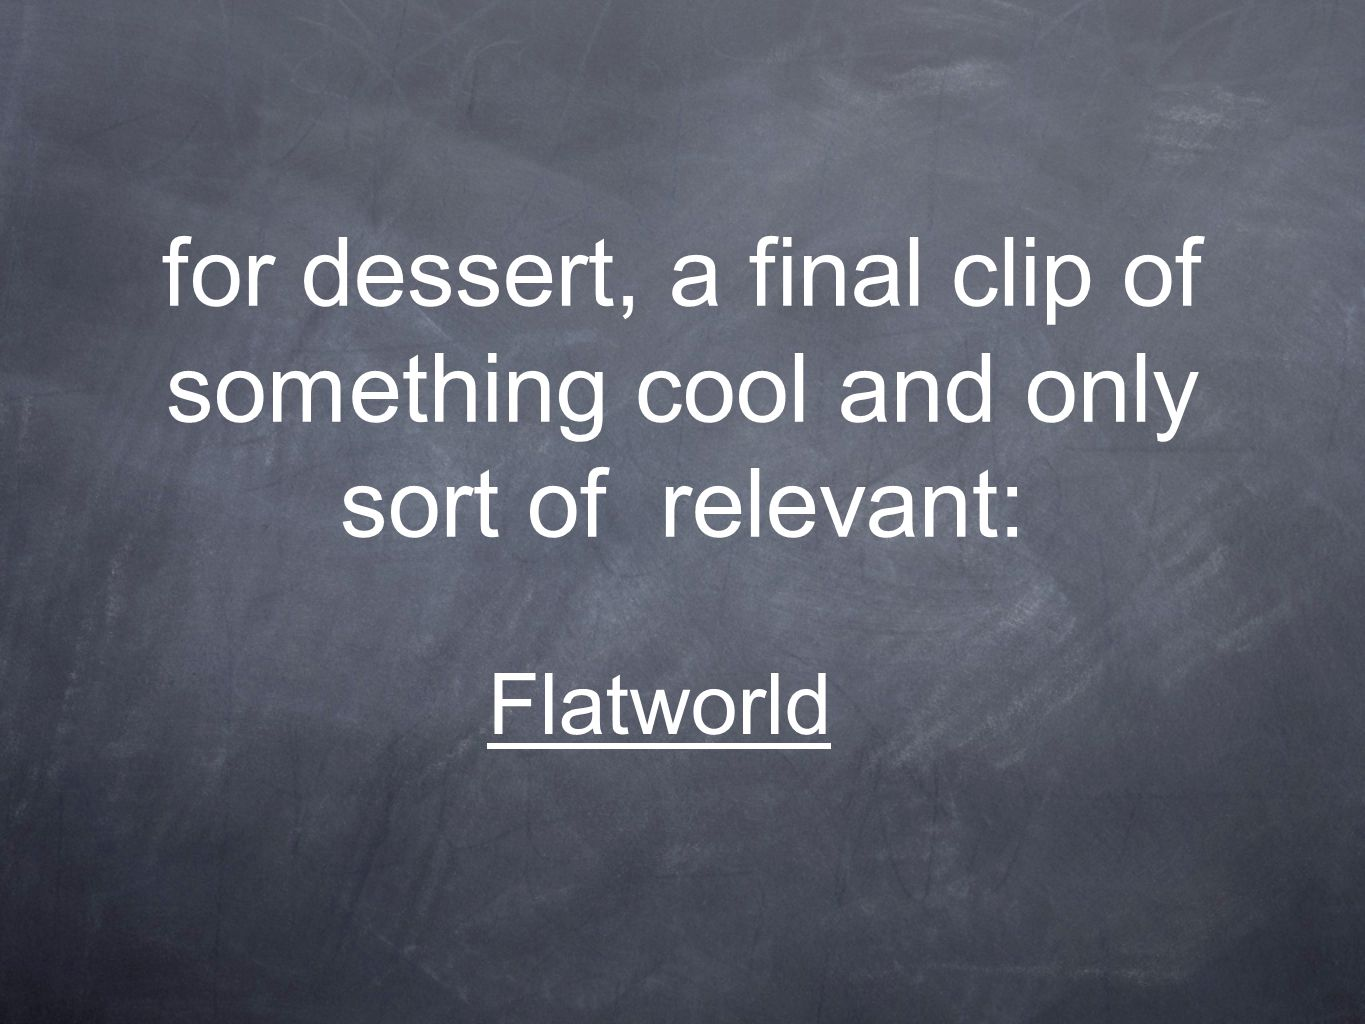 for dessert, a final clip of something cool and only sort of relevant: Flatworld